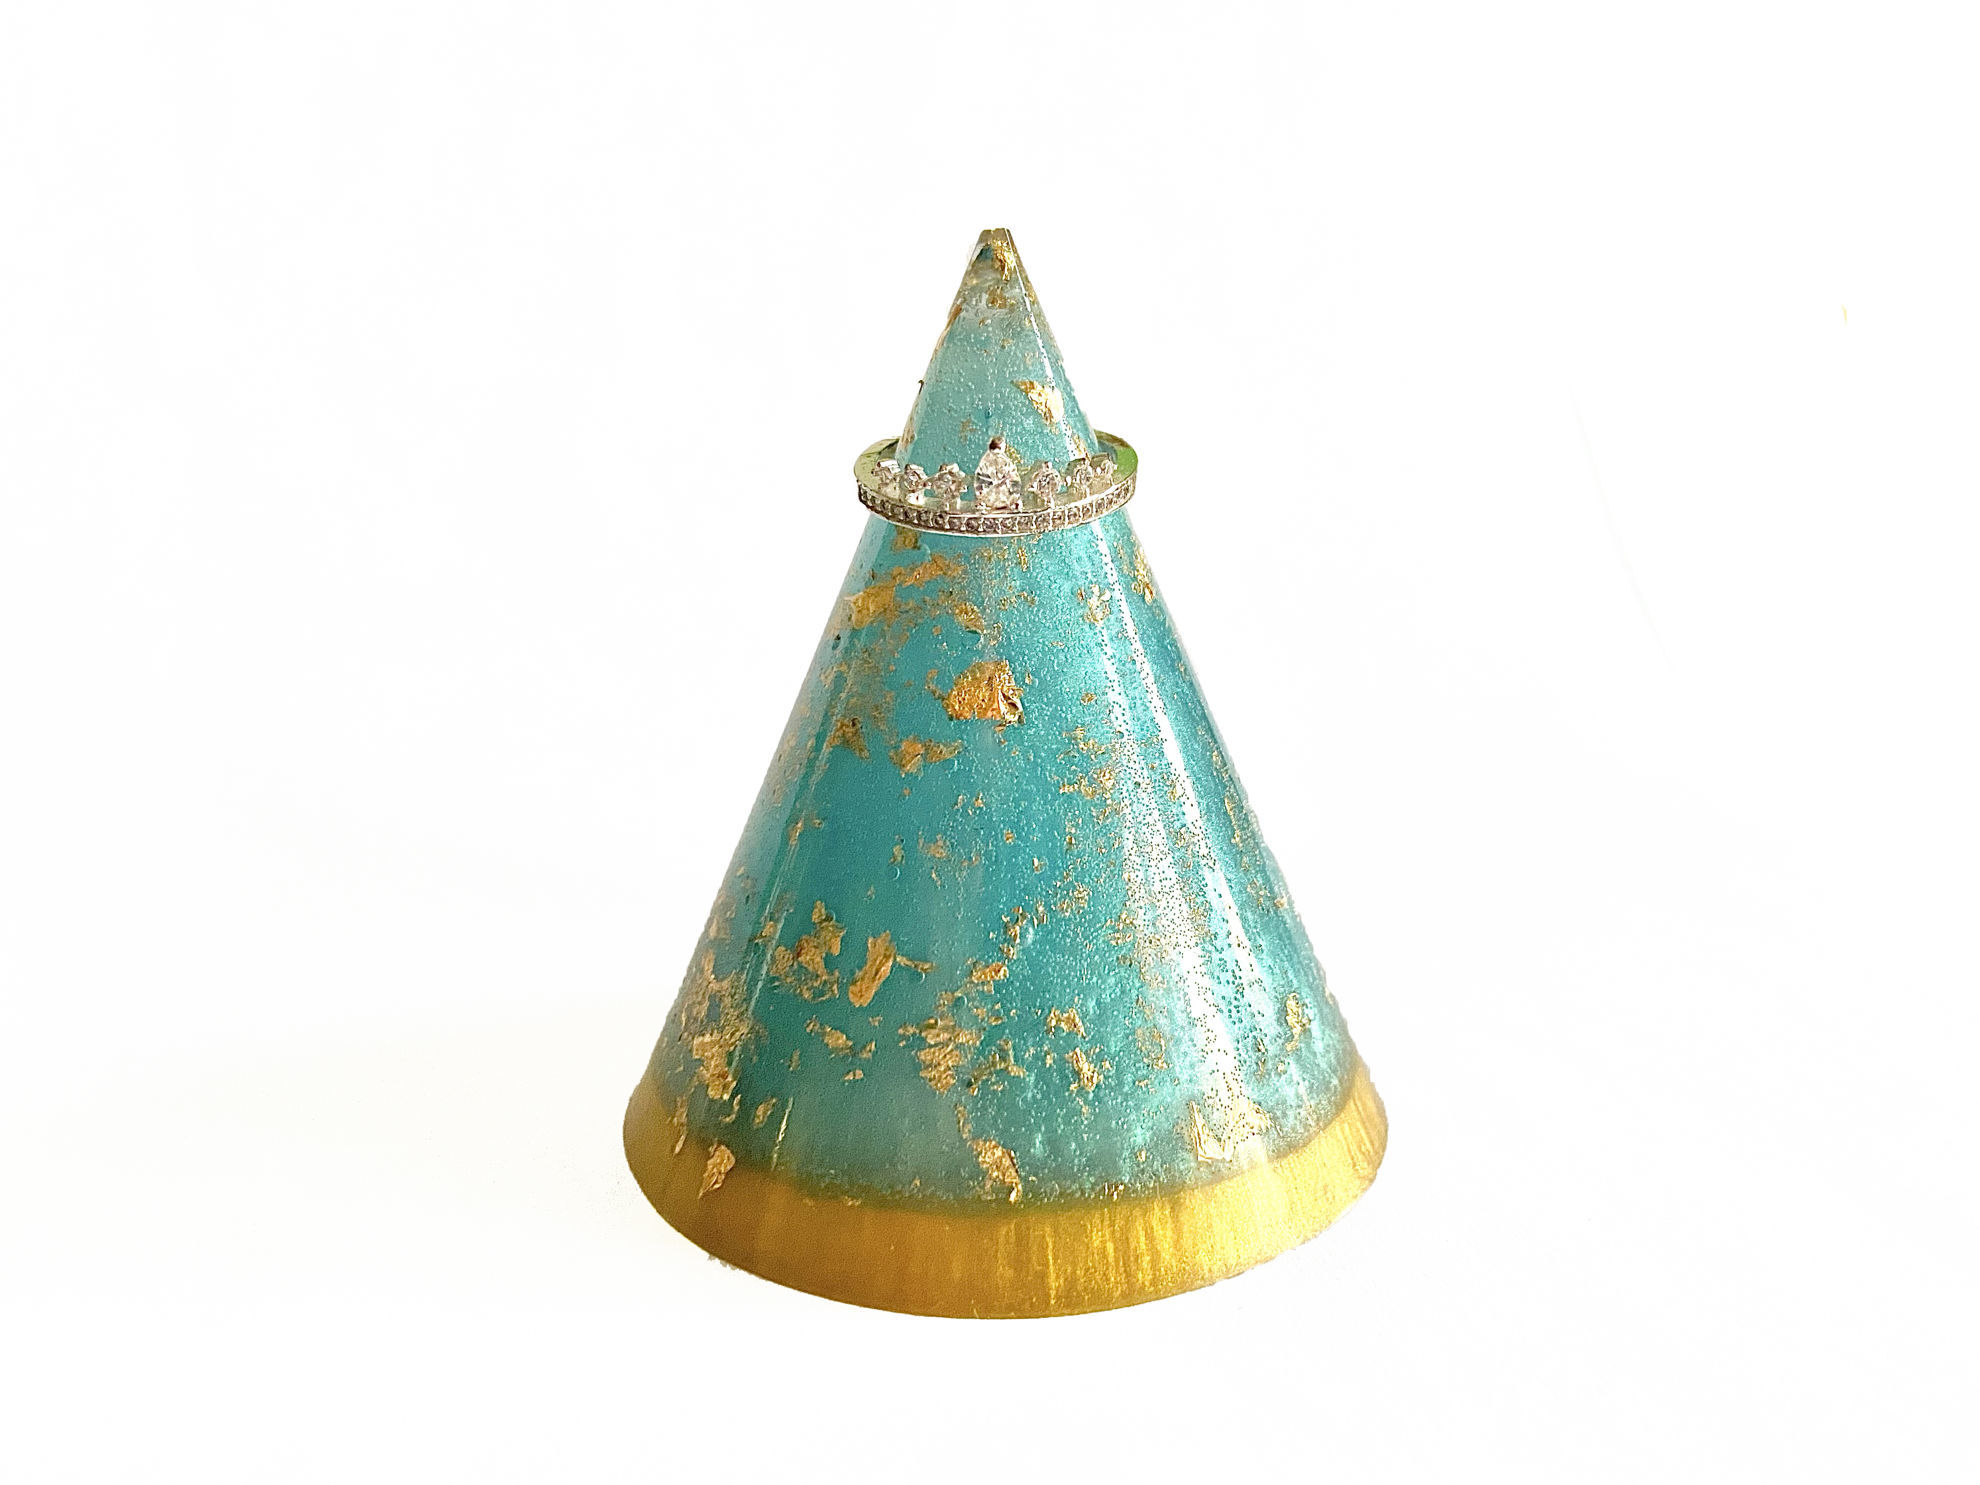 Turquoise & Gold Ring Holder by Spirited Pyramids